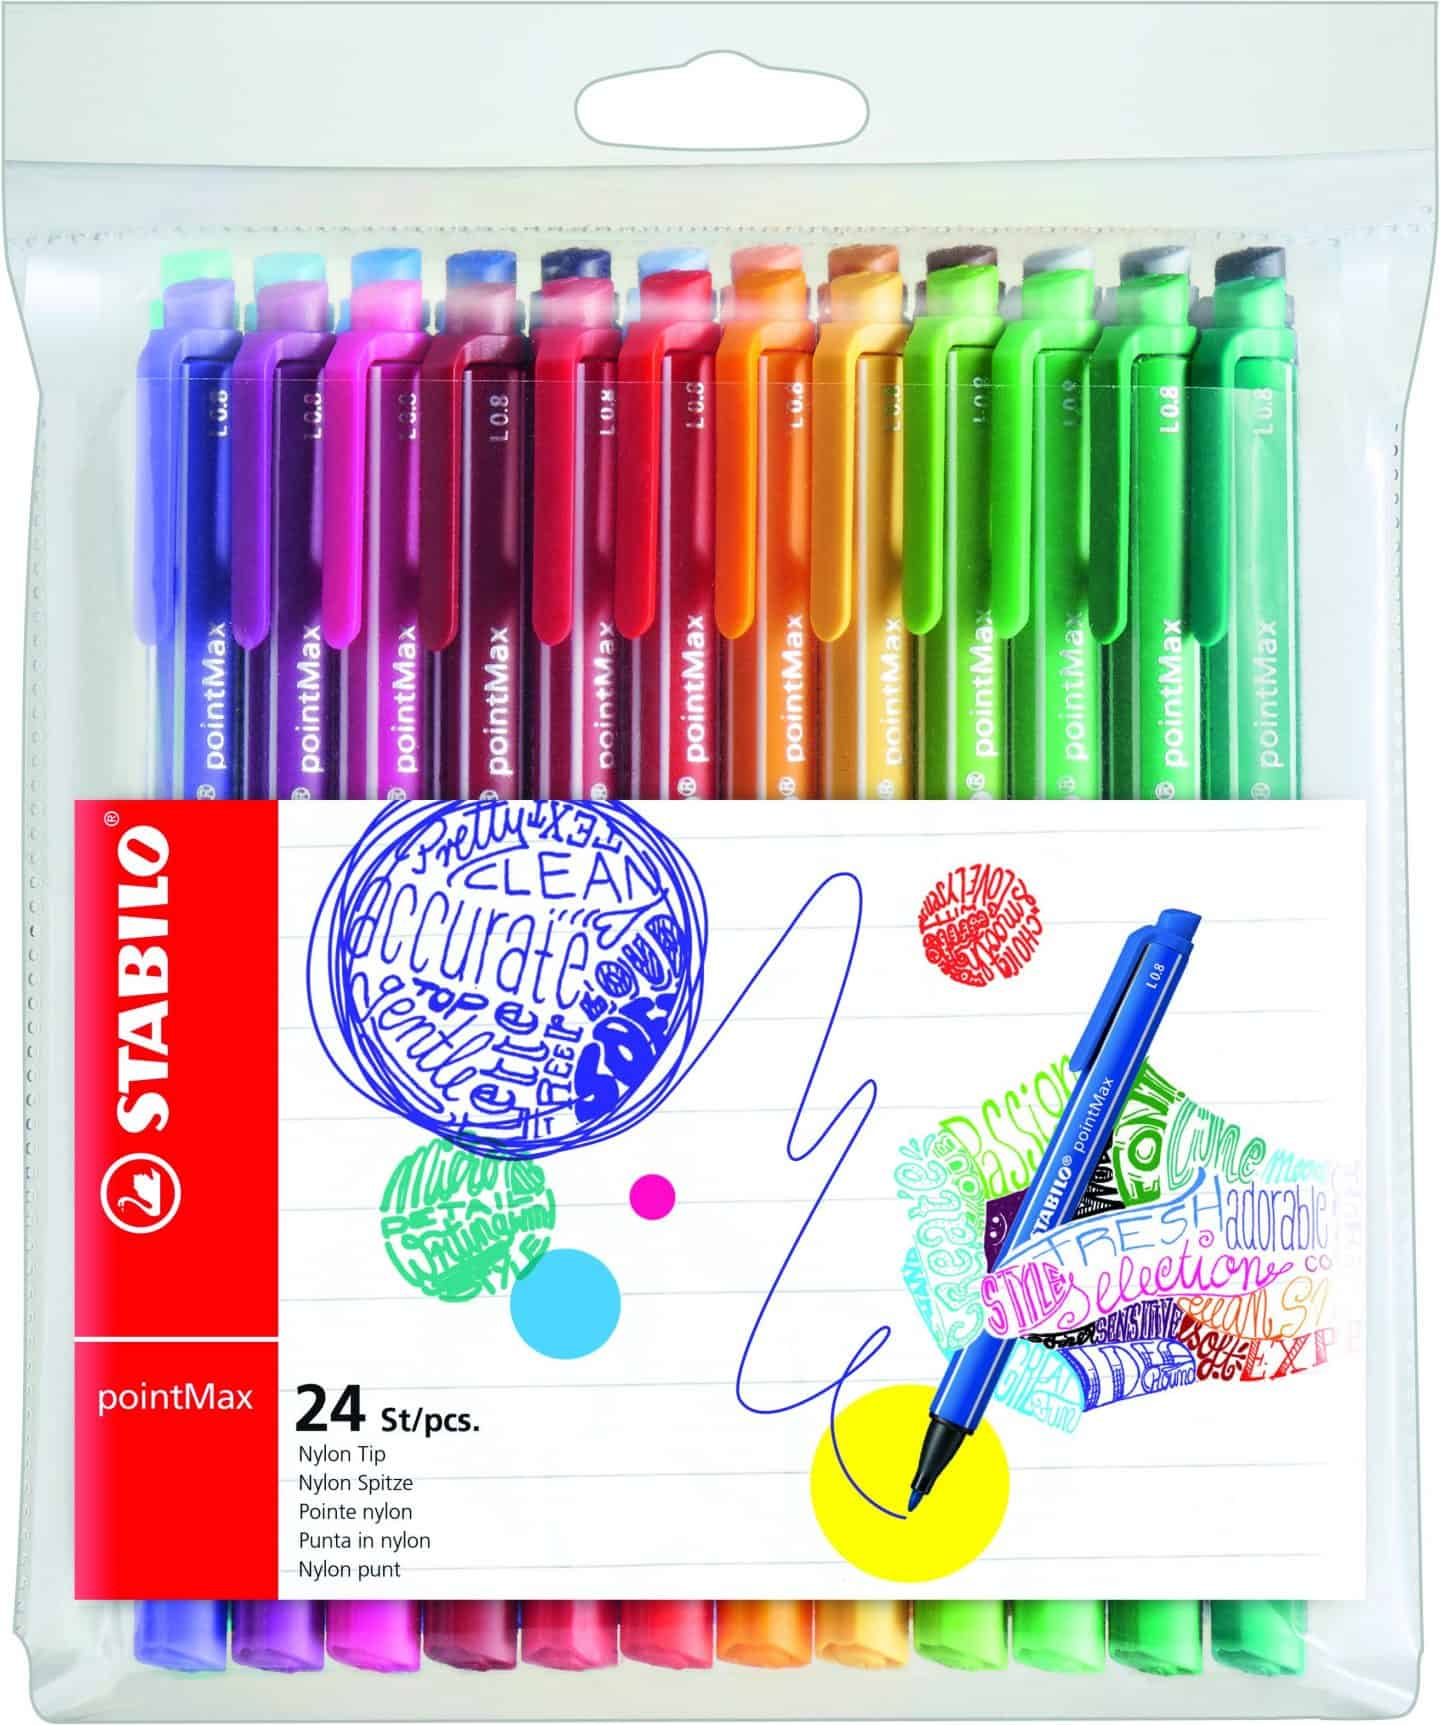 Stationery - pointMax pens